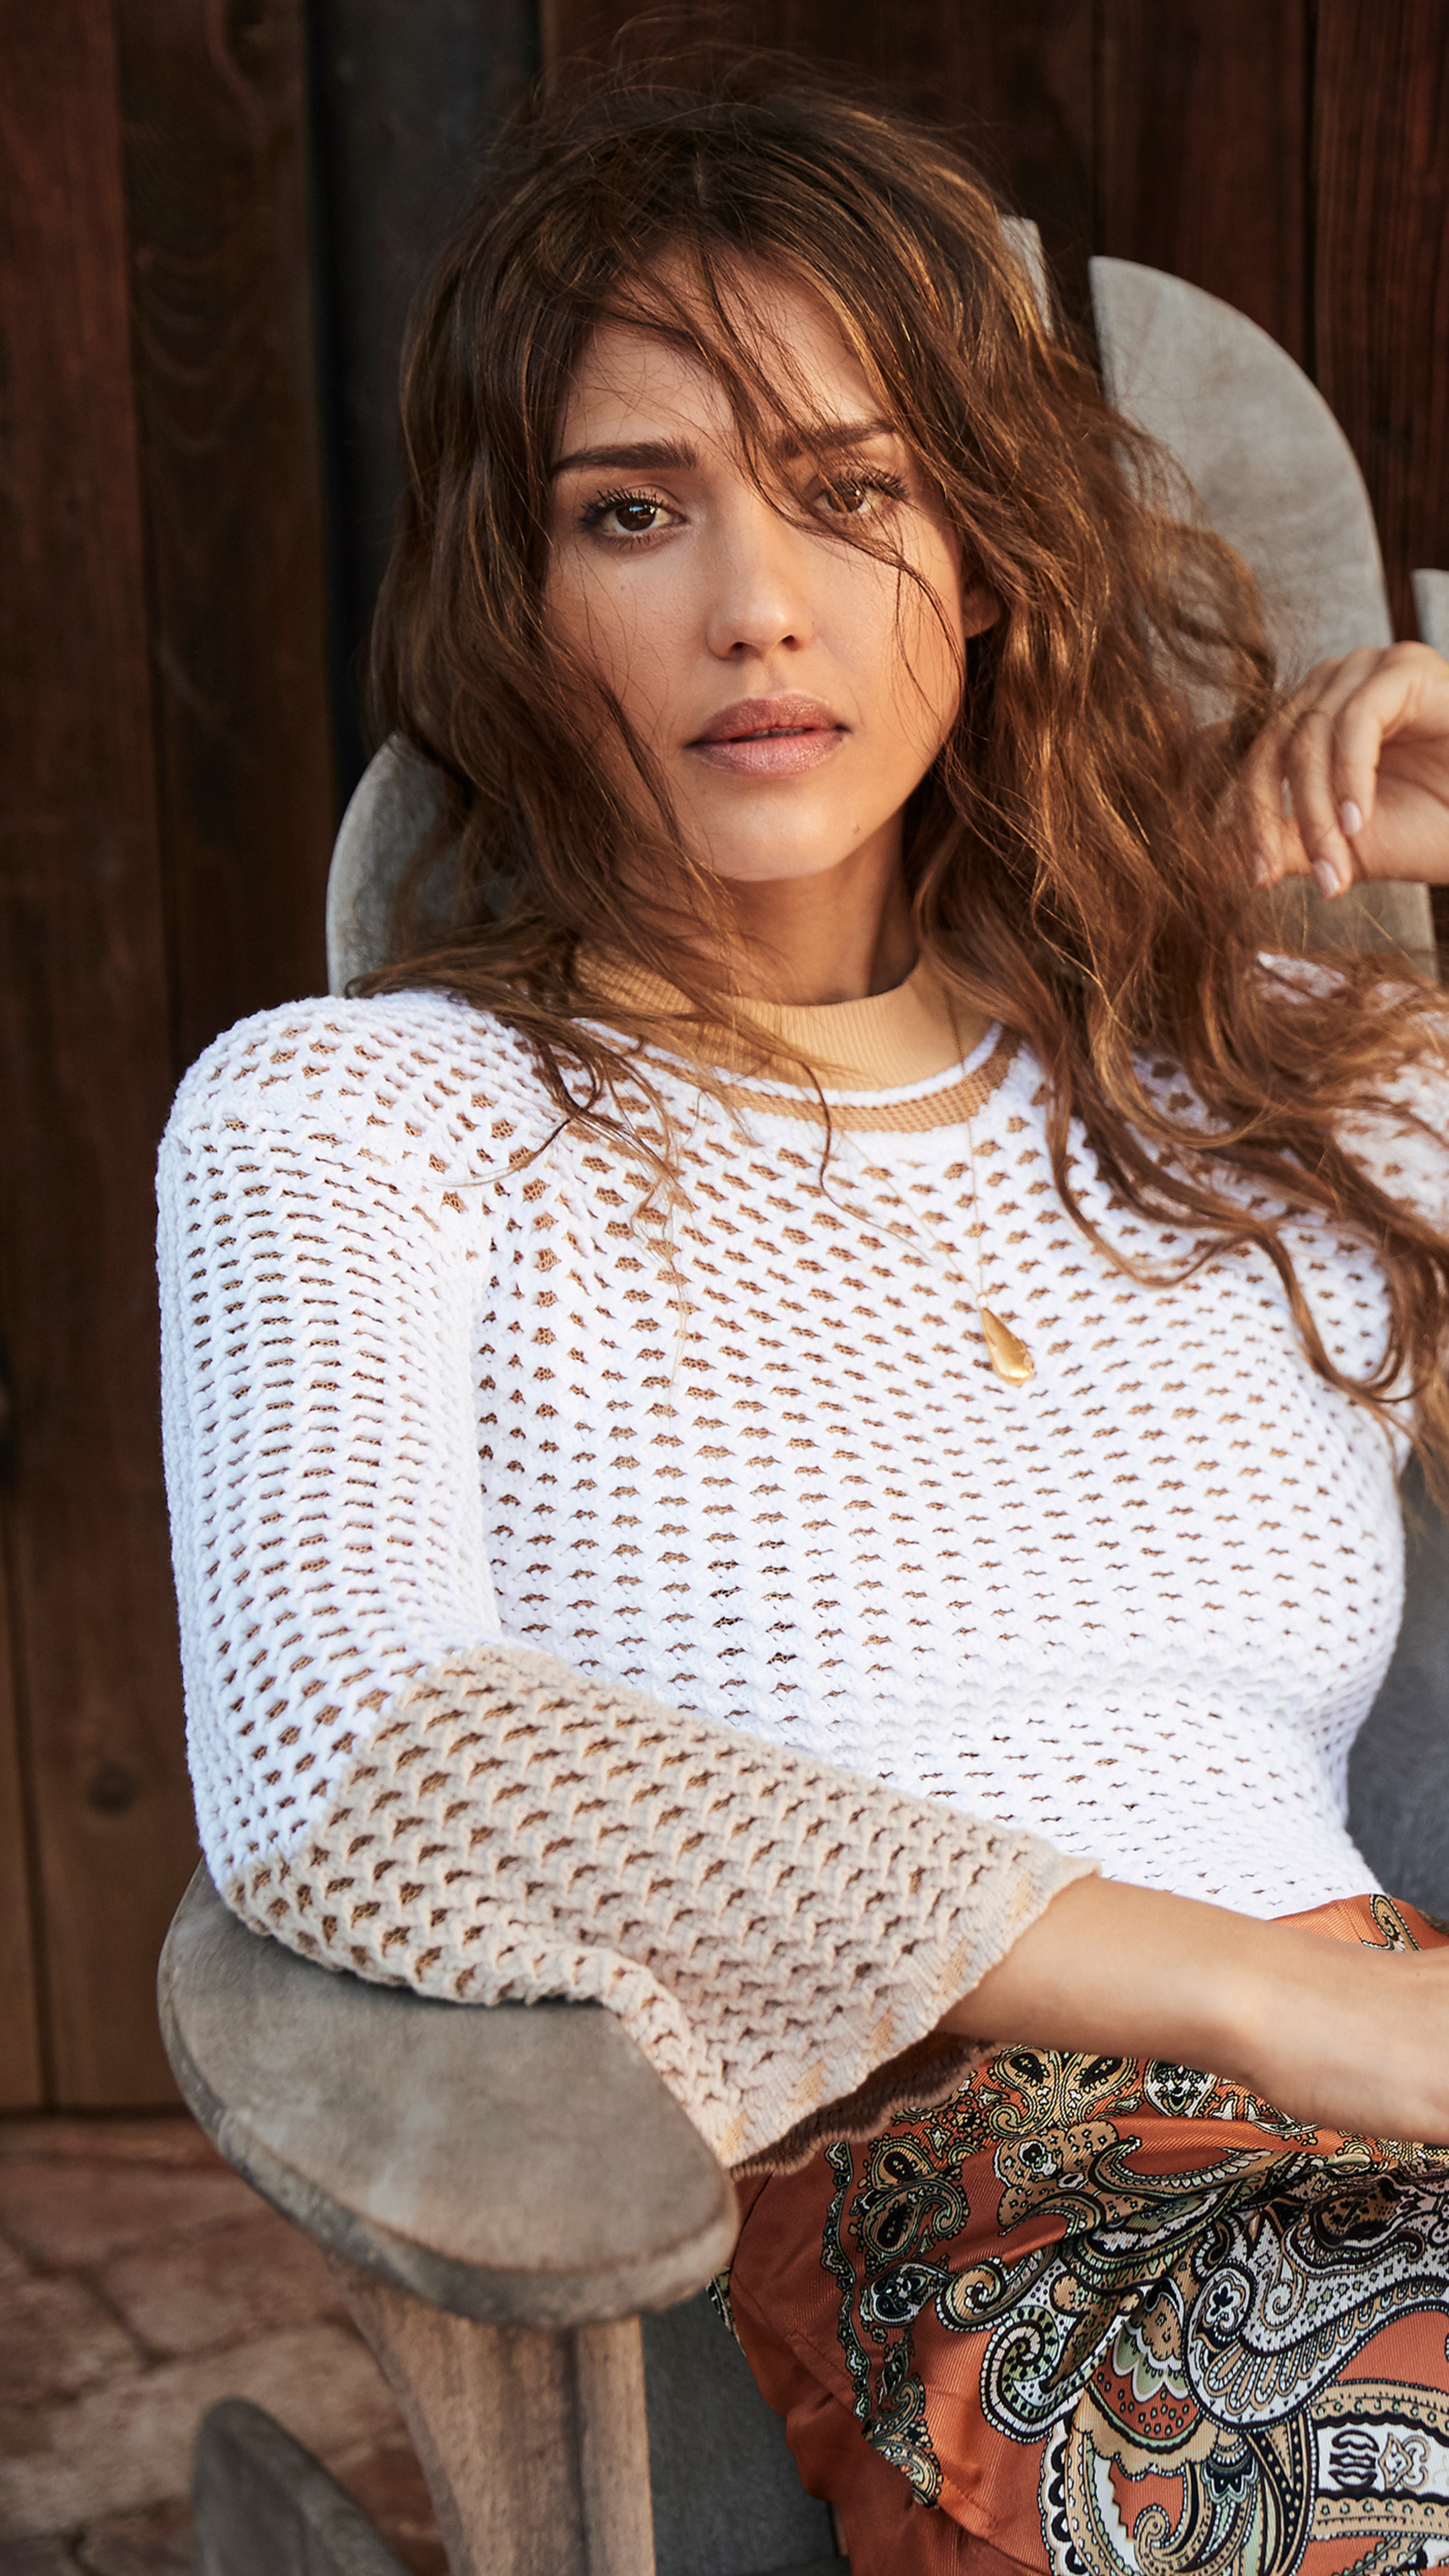 jessica-alba-the-edit-by-net-a-porter-photoshoot-yv.jpg